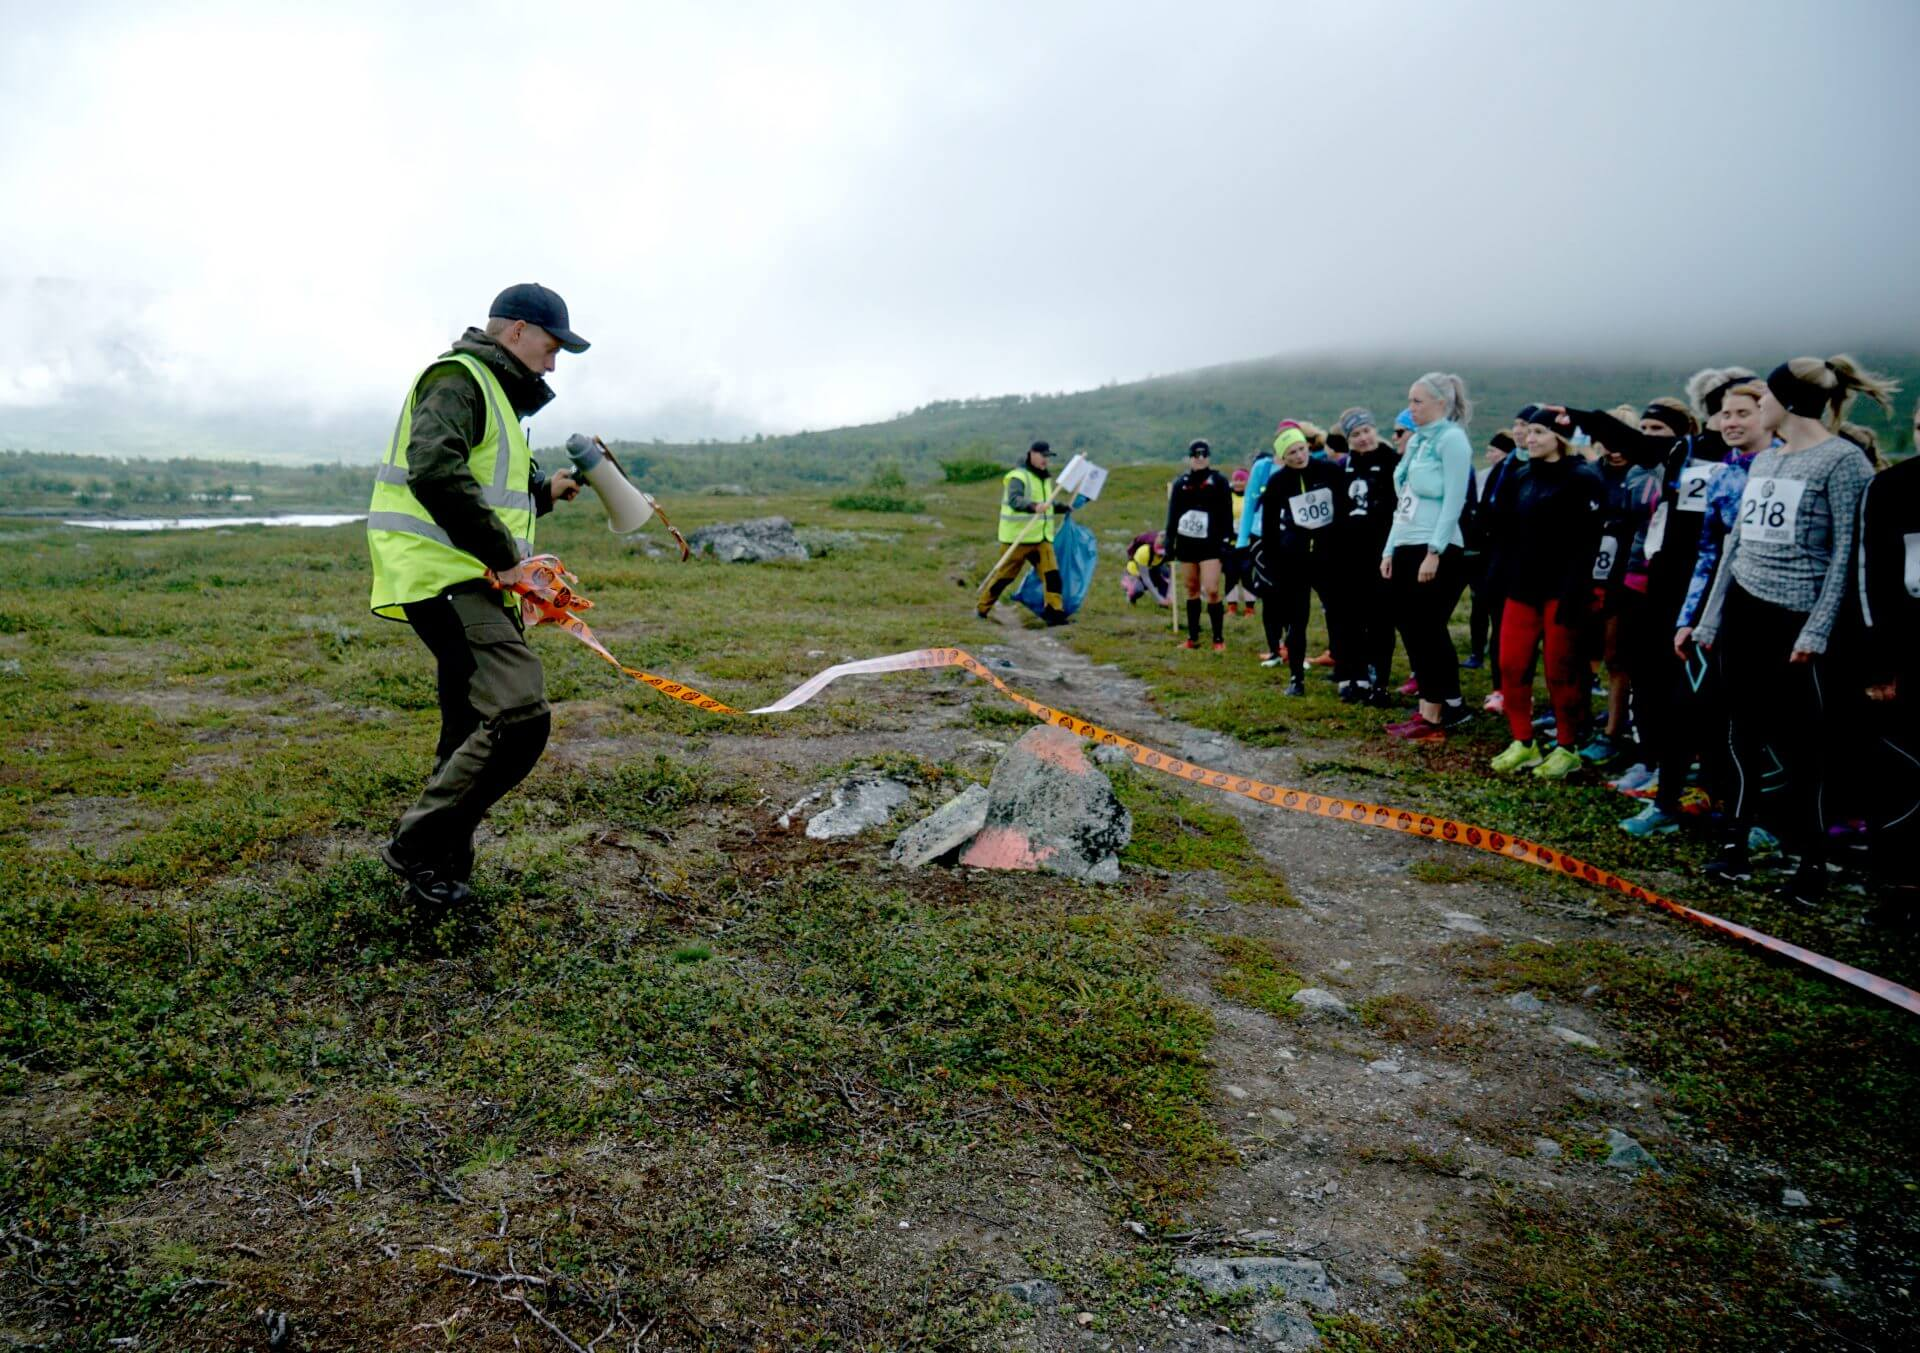 Arctic Circle Race 2019 Polcirkelloppet Guijaure start band